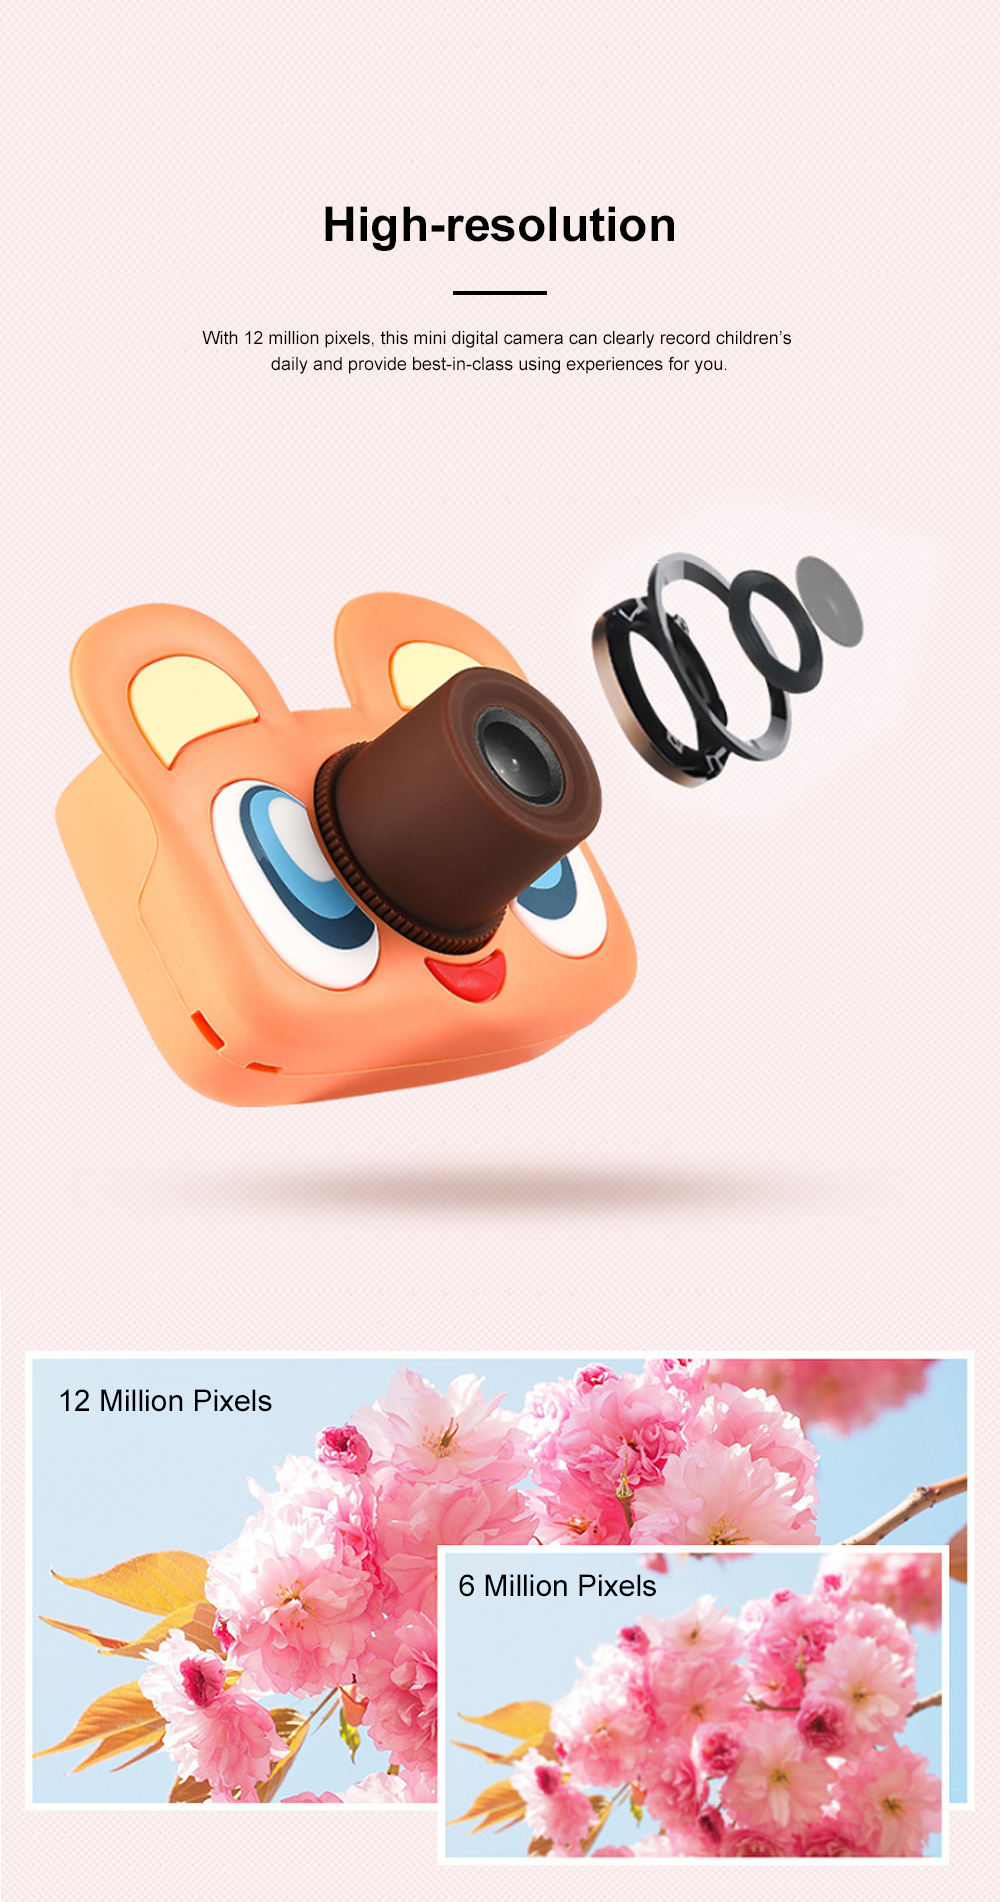 Cute Animal Model Mini Digital Camera for Children WIth Breaking-proof Silicone Shell 16G 1200W HD Pixel 2.0 inch Video Recorder Birthday Present 2